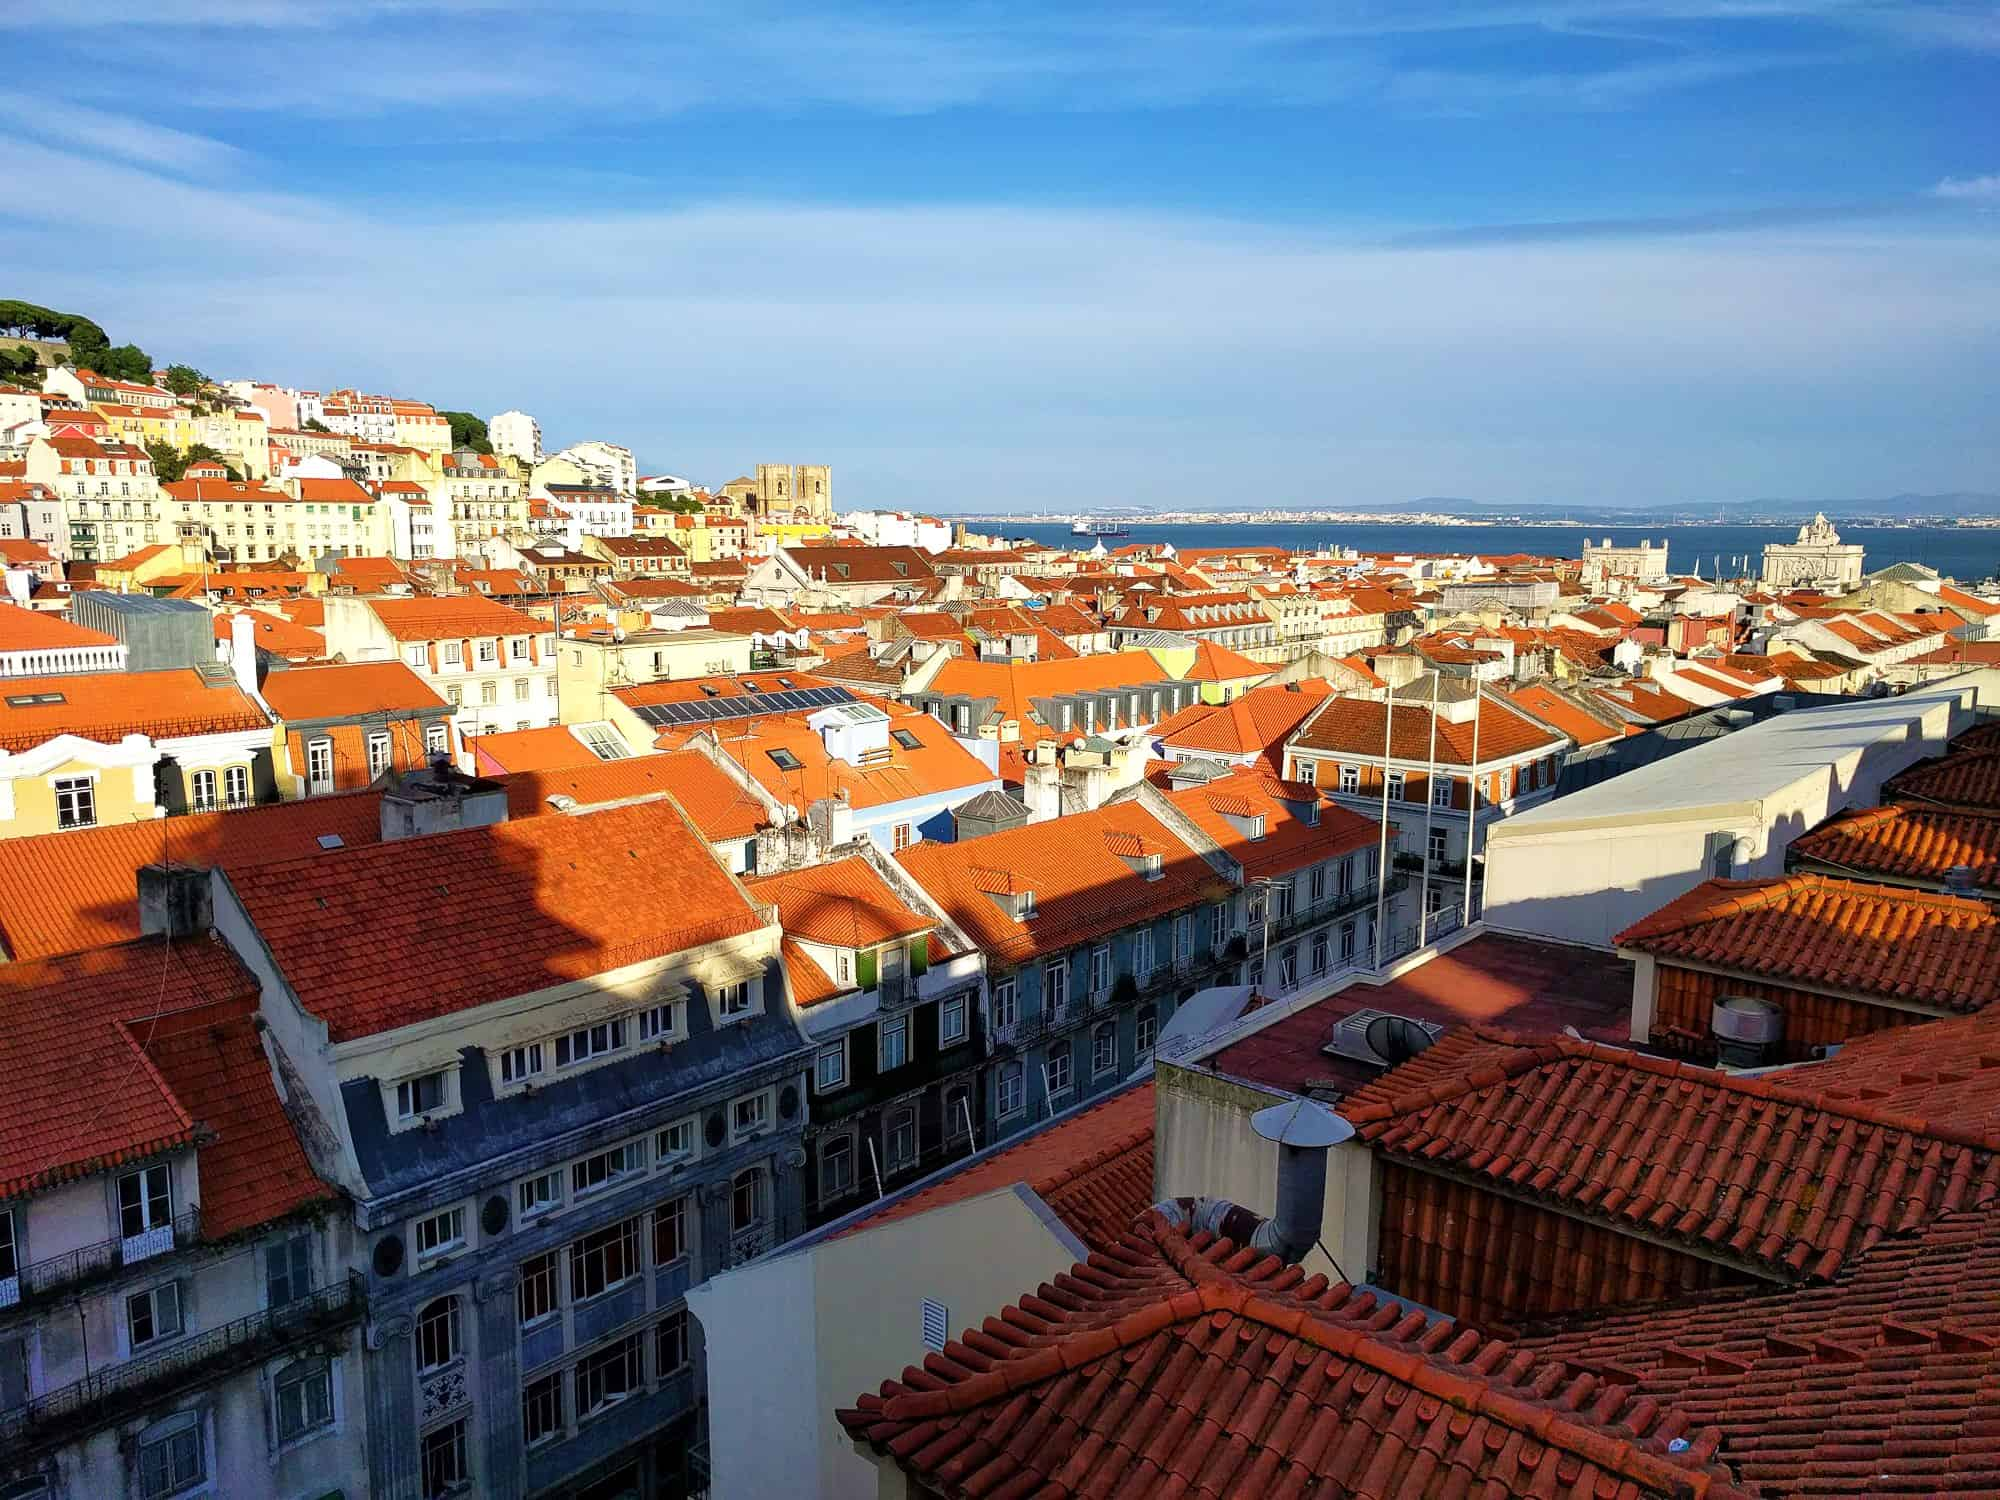 A Lisbon viewpoint